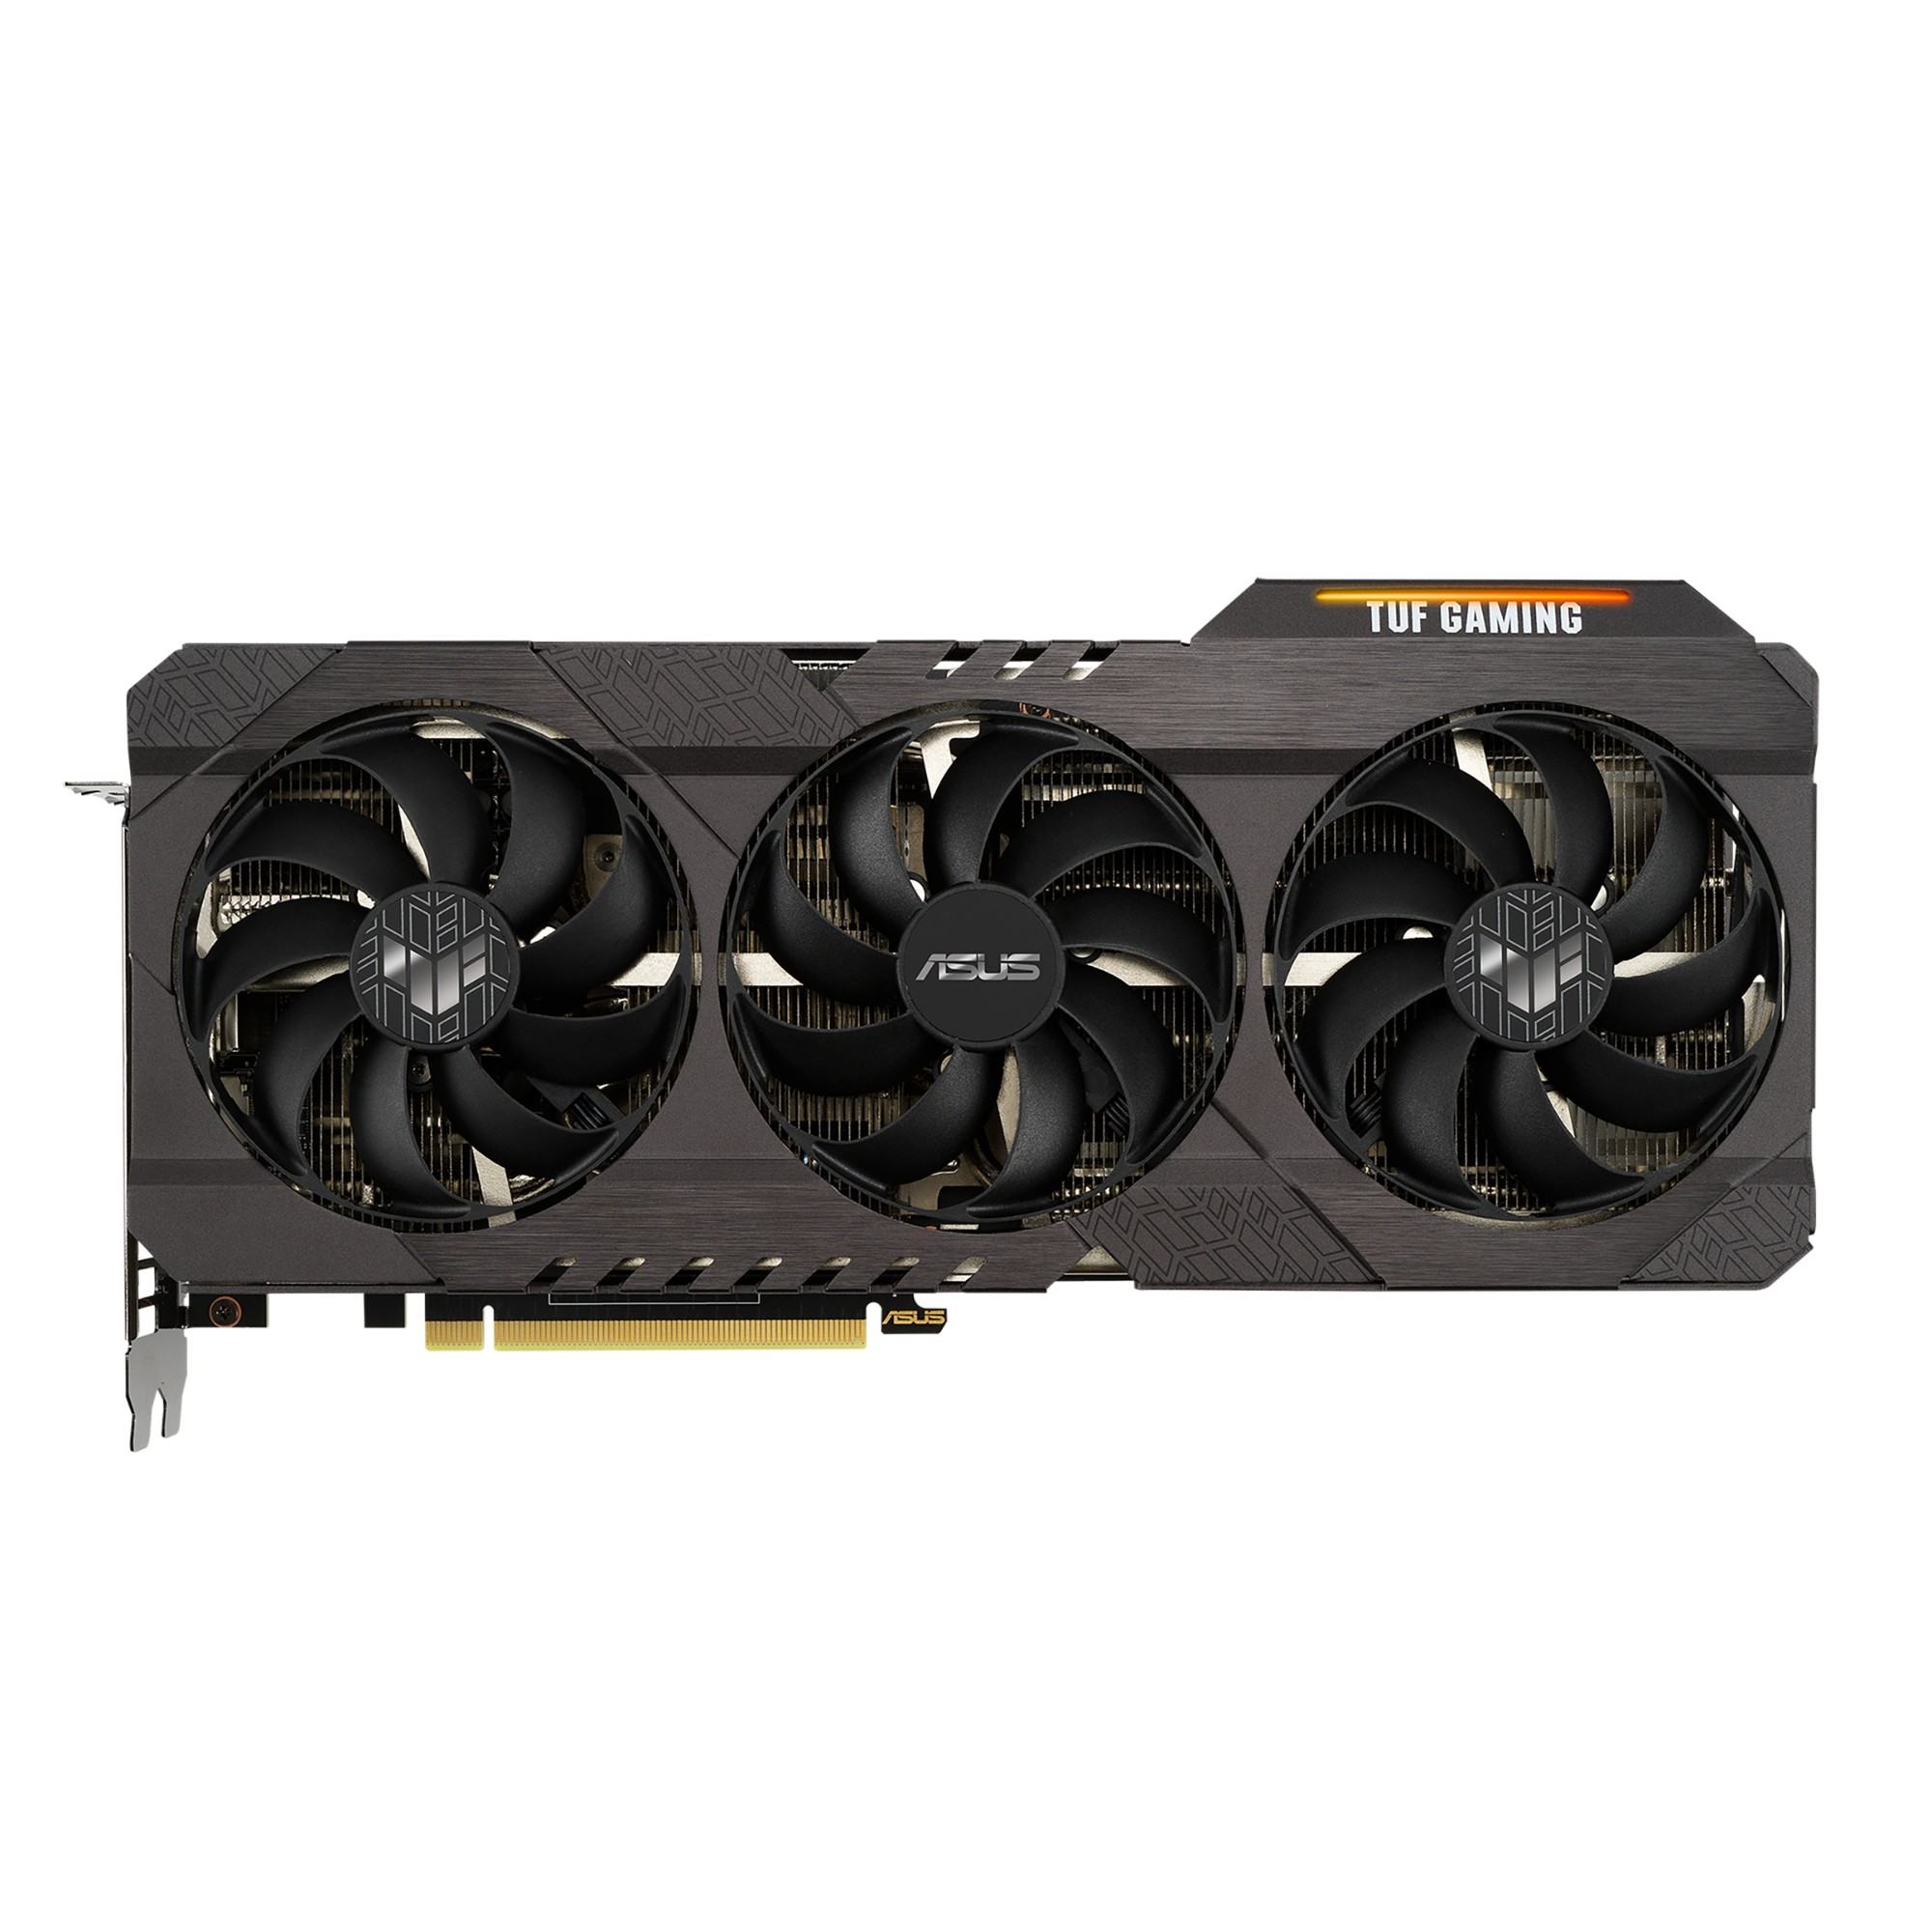 ASUS TUF Gaming TUF-RTX3070-O8G-GAMING NVIDIA GeForce RTX 3070 8 GB GDDR6